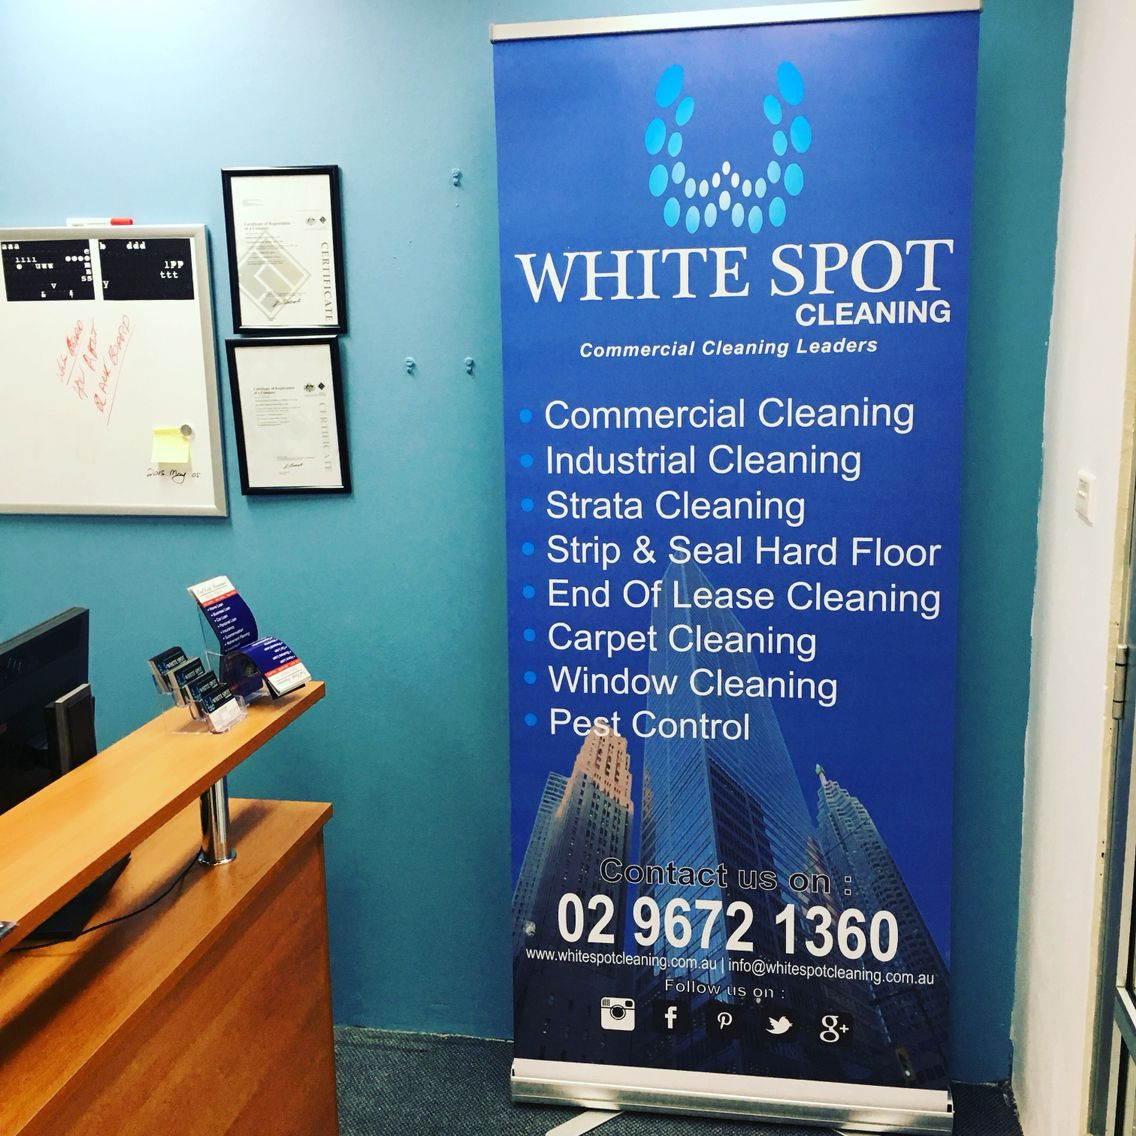 Our services include End Of Lease Cleaning Carpet